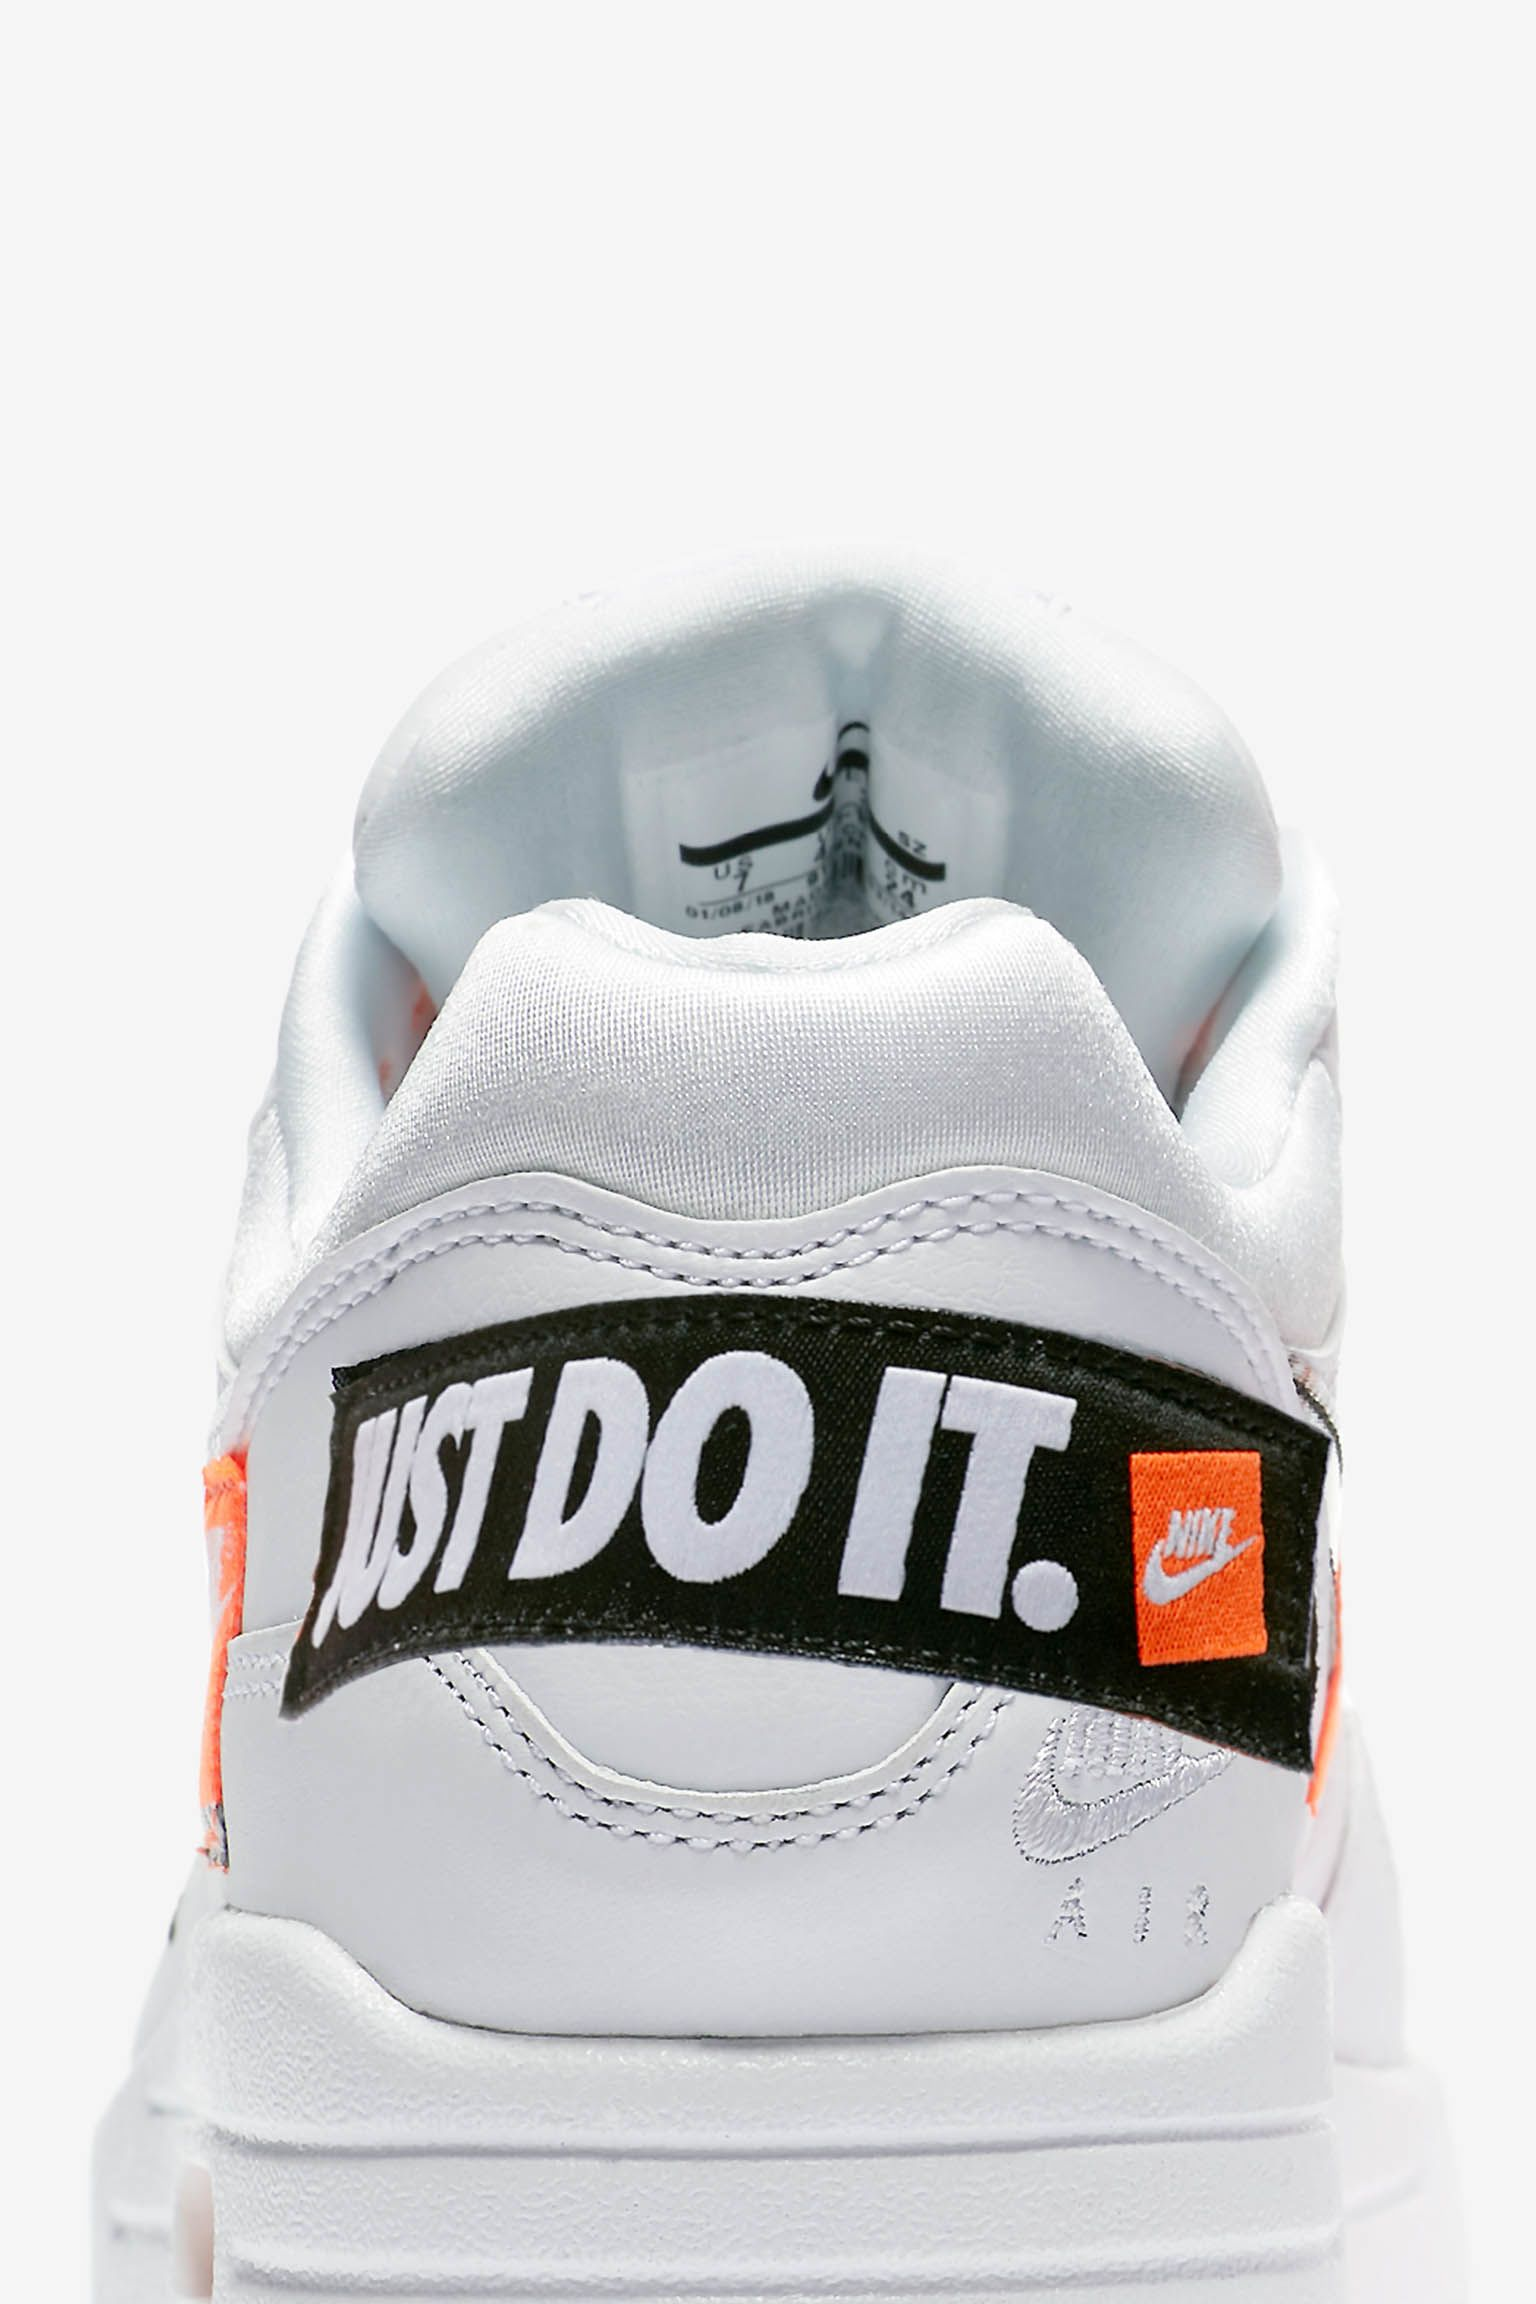 Nike Air Max 1 Just Do It Release Date Nike Snkrs